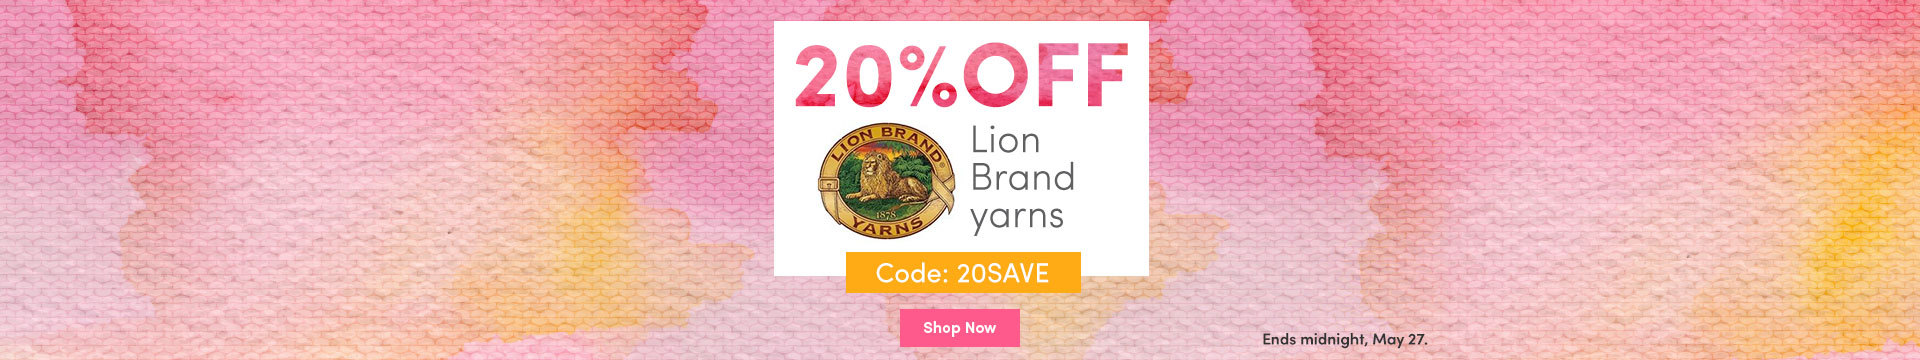 LC Marketing NA - 20% off Lion Brand